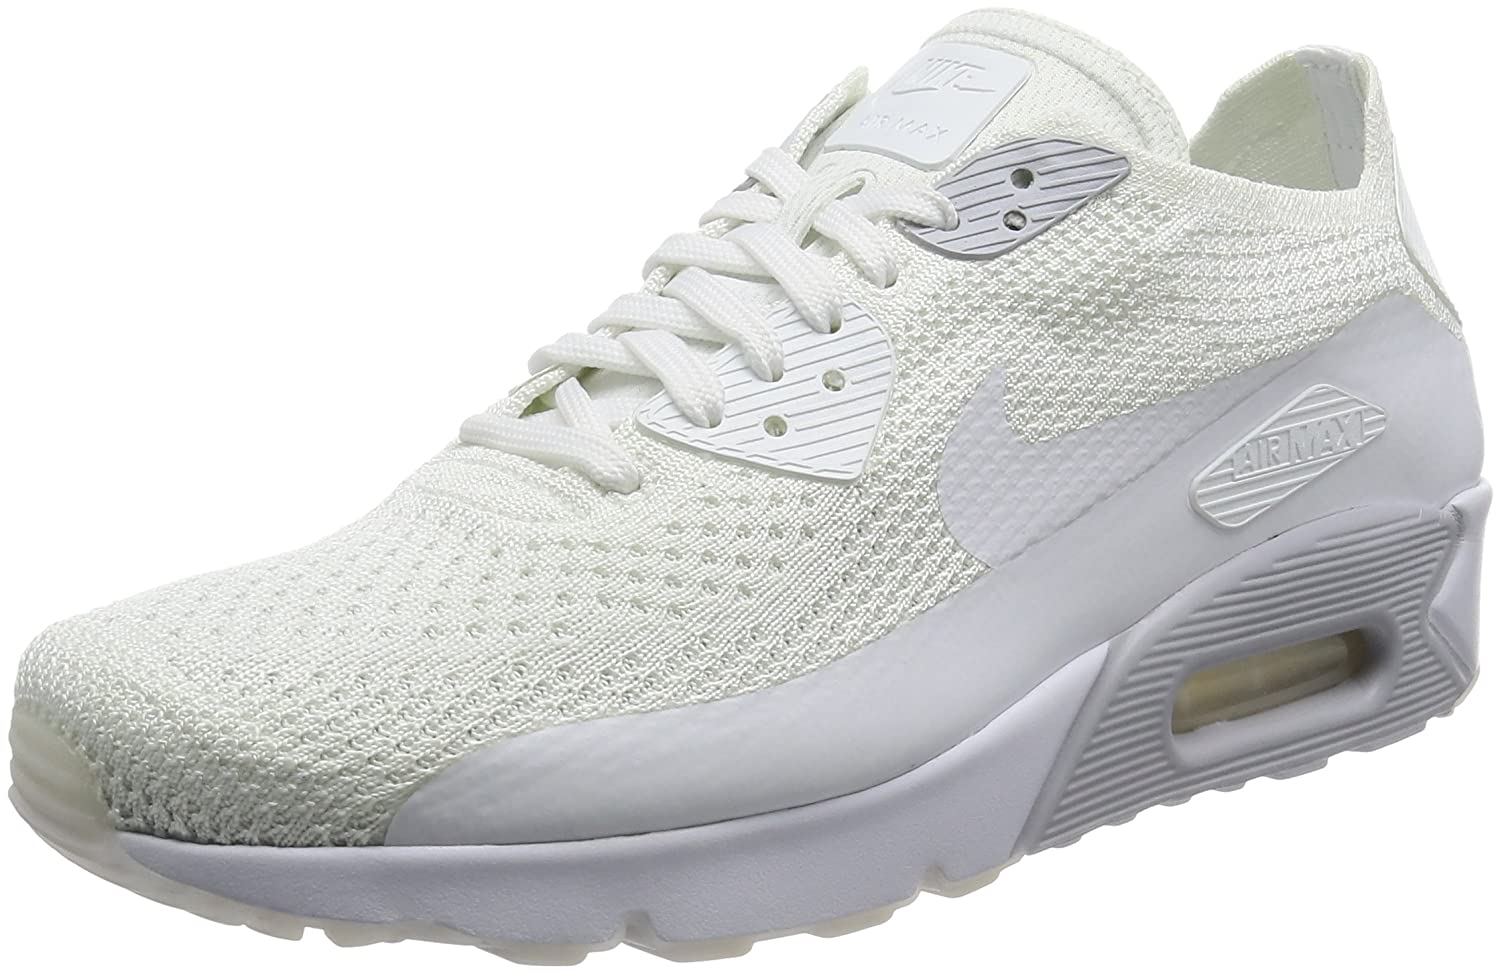 reputable site fa257 c2522 Amazon.com | Nike AIR MAX 90 Ultra 2.0 Flyknit White Pure Platinum Mens  Running 875943 101 | Road Running